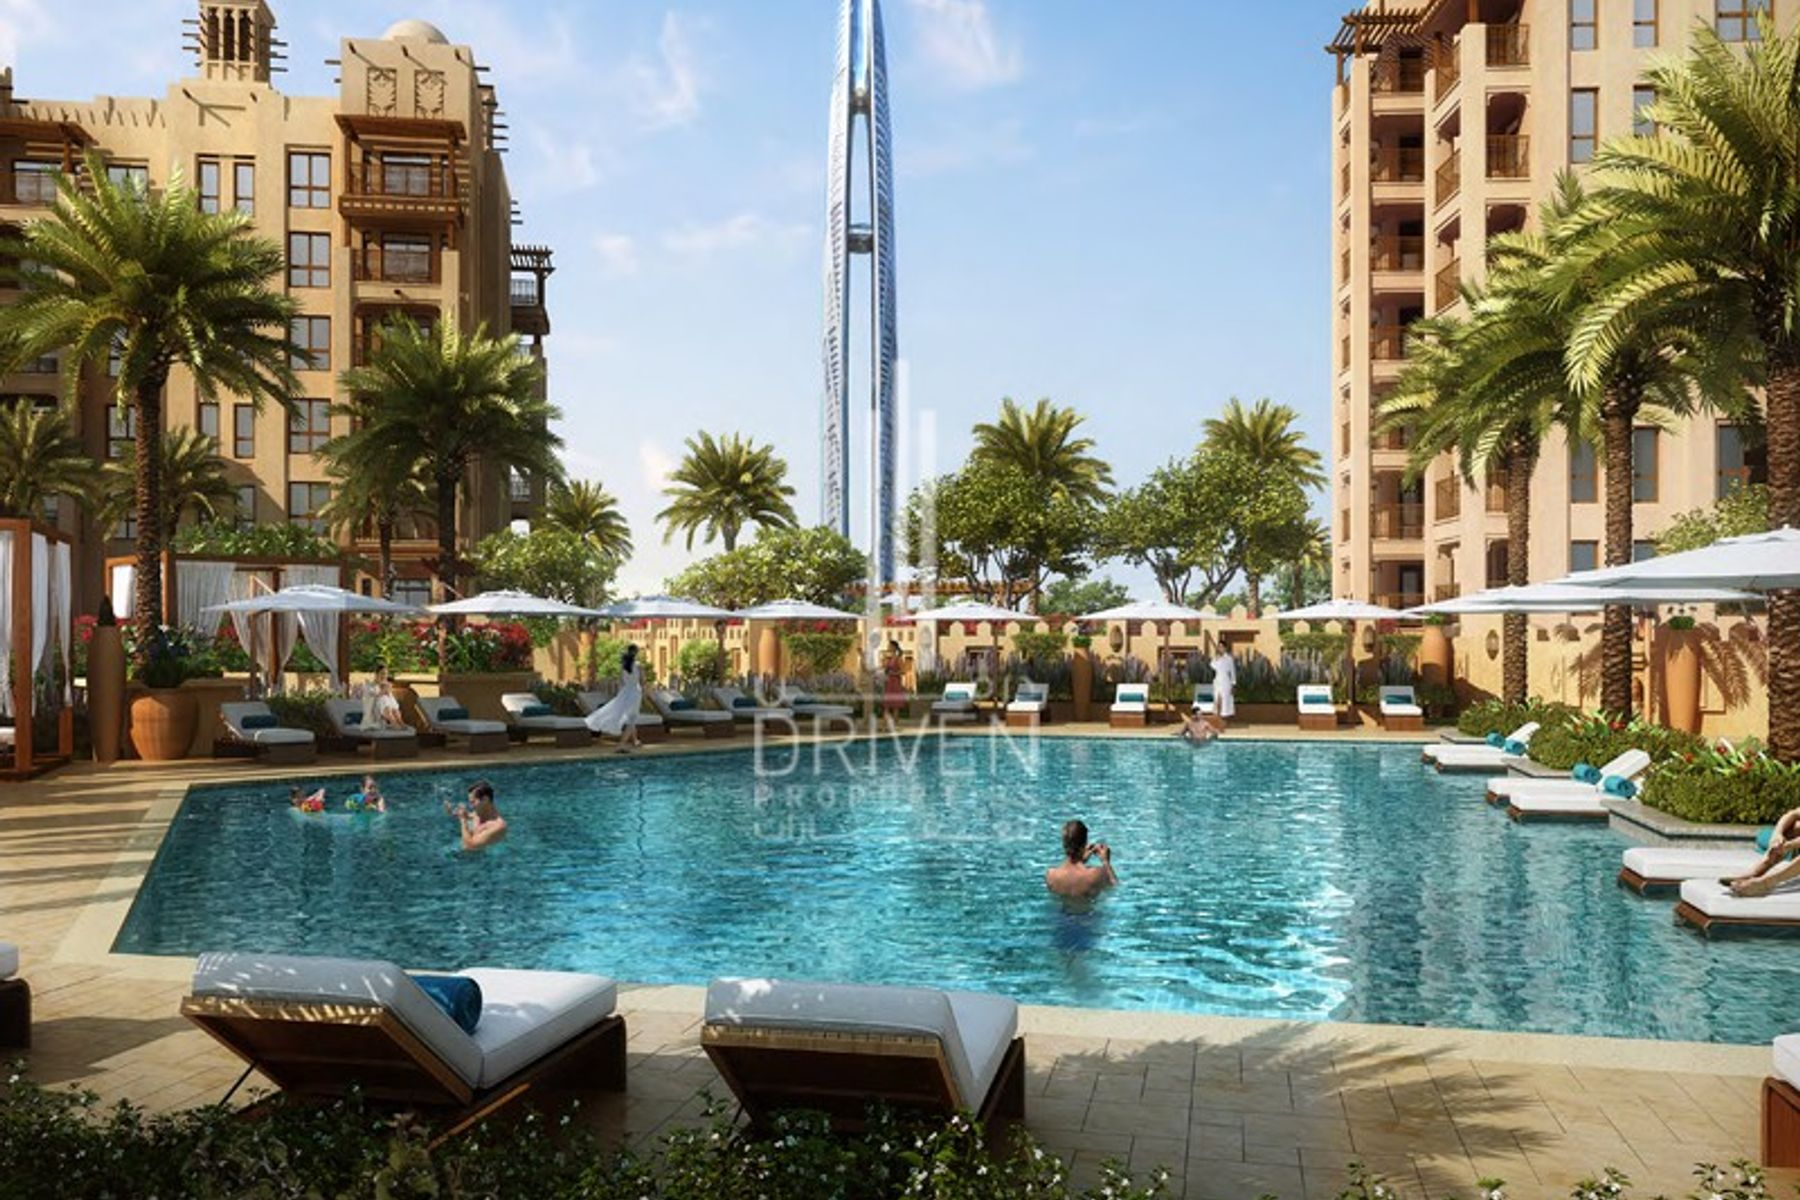 NEW ASAYEL AT MJL WITH A BURJ ARAB VIEWS